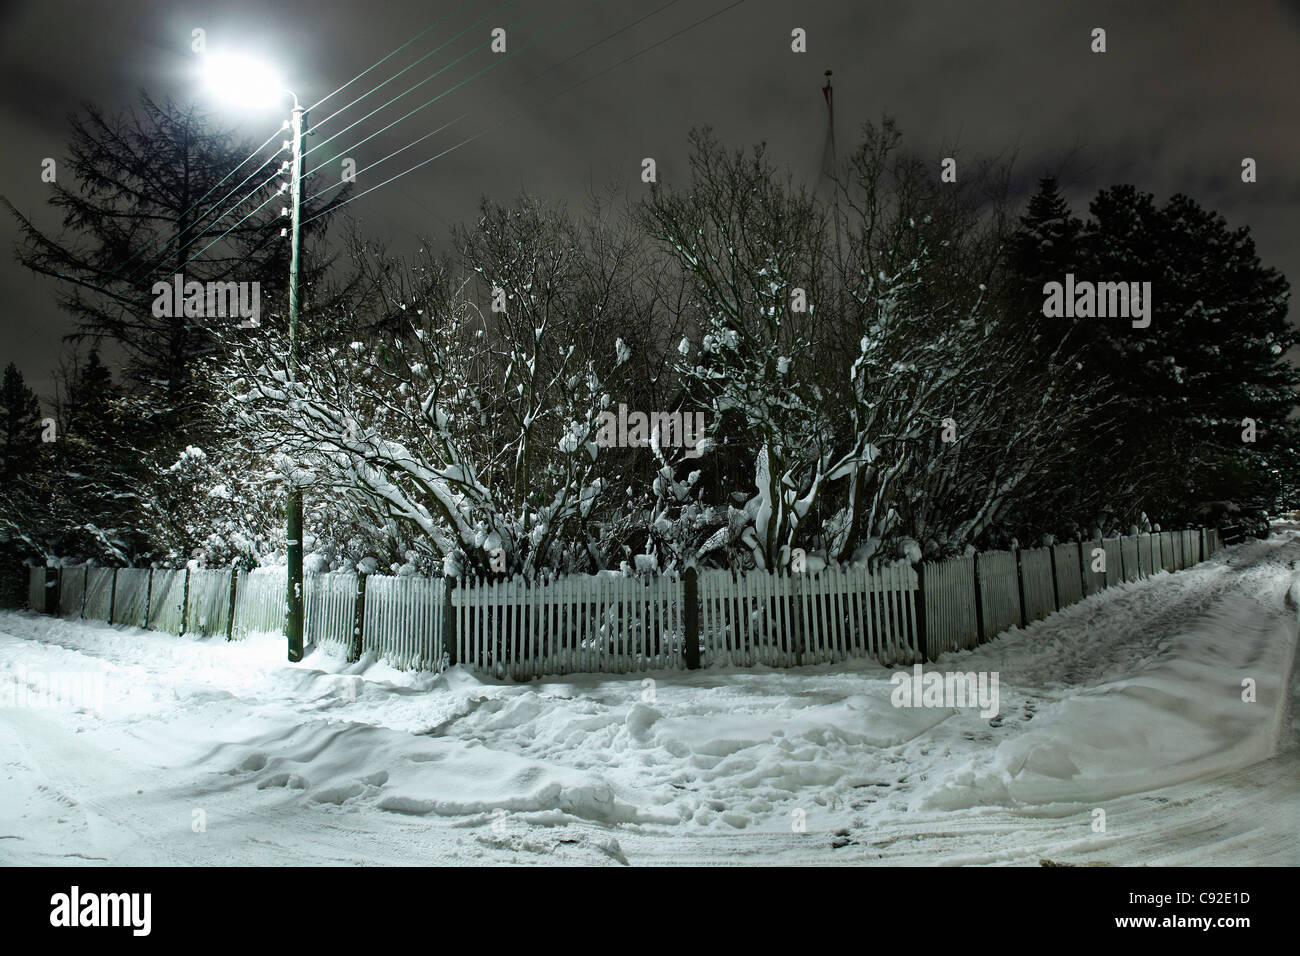 Snow covered picket fence and trees - Stock Image